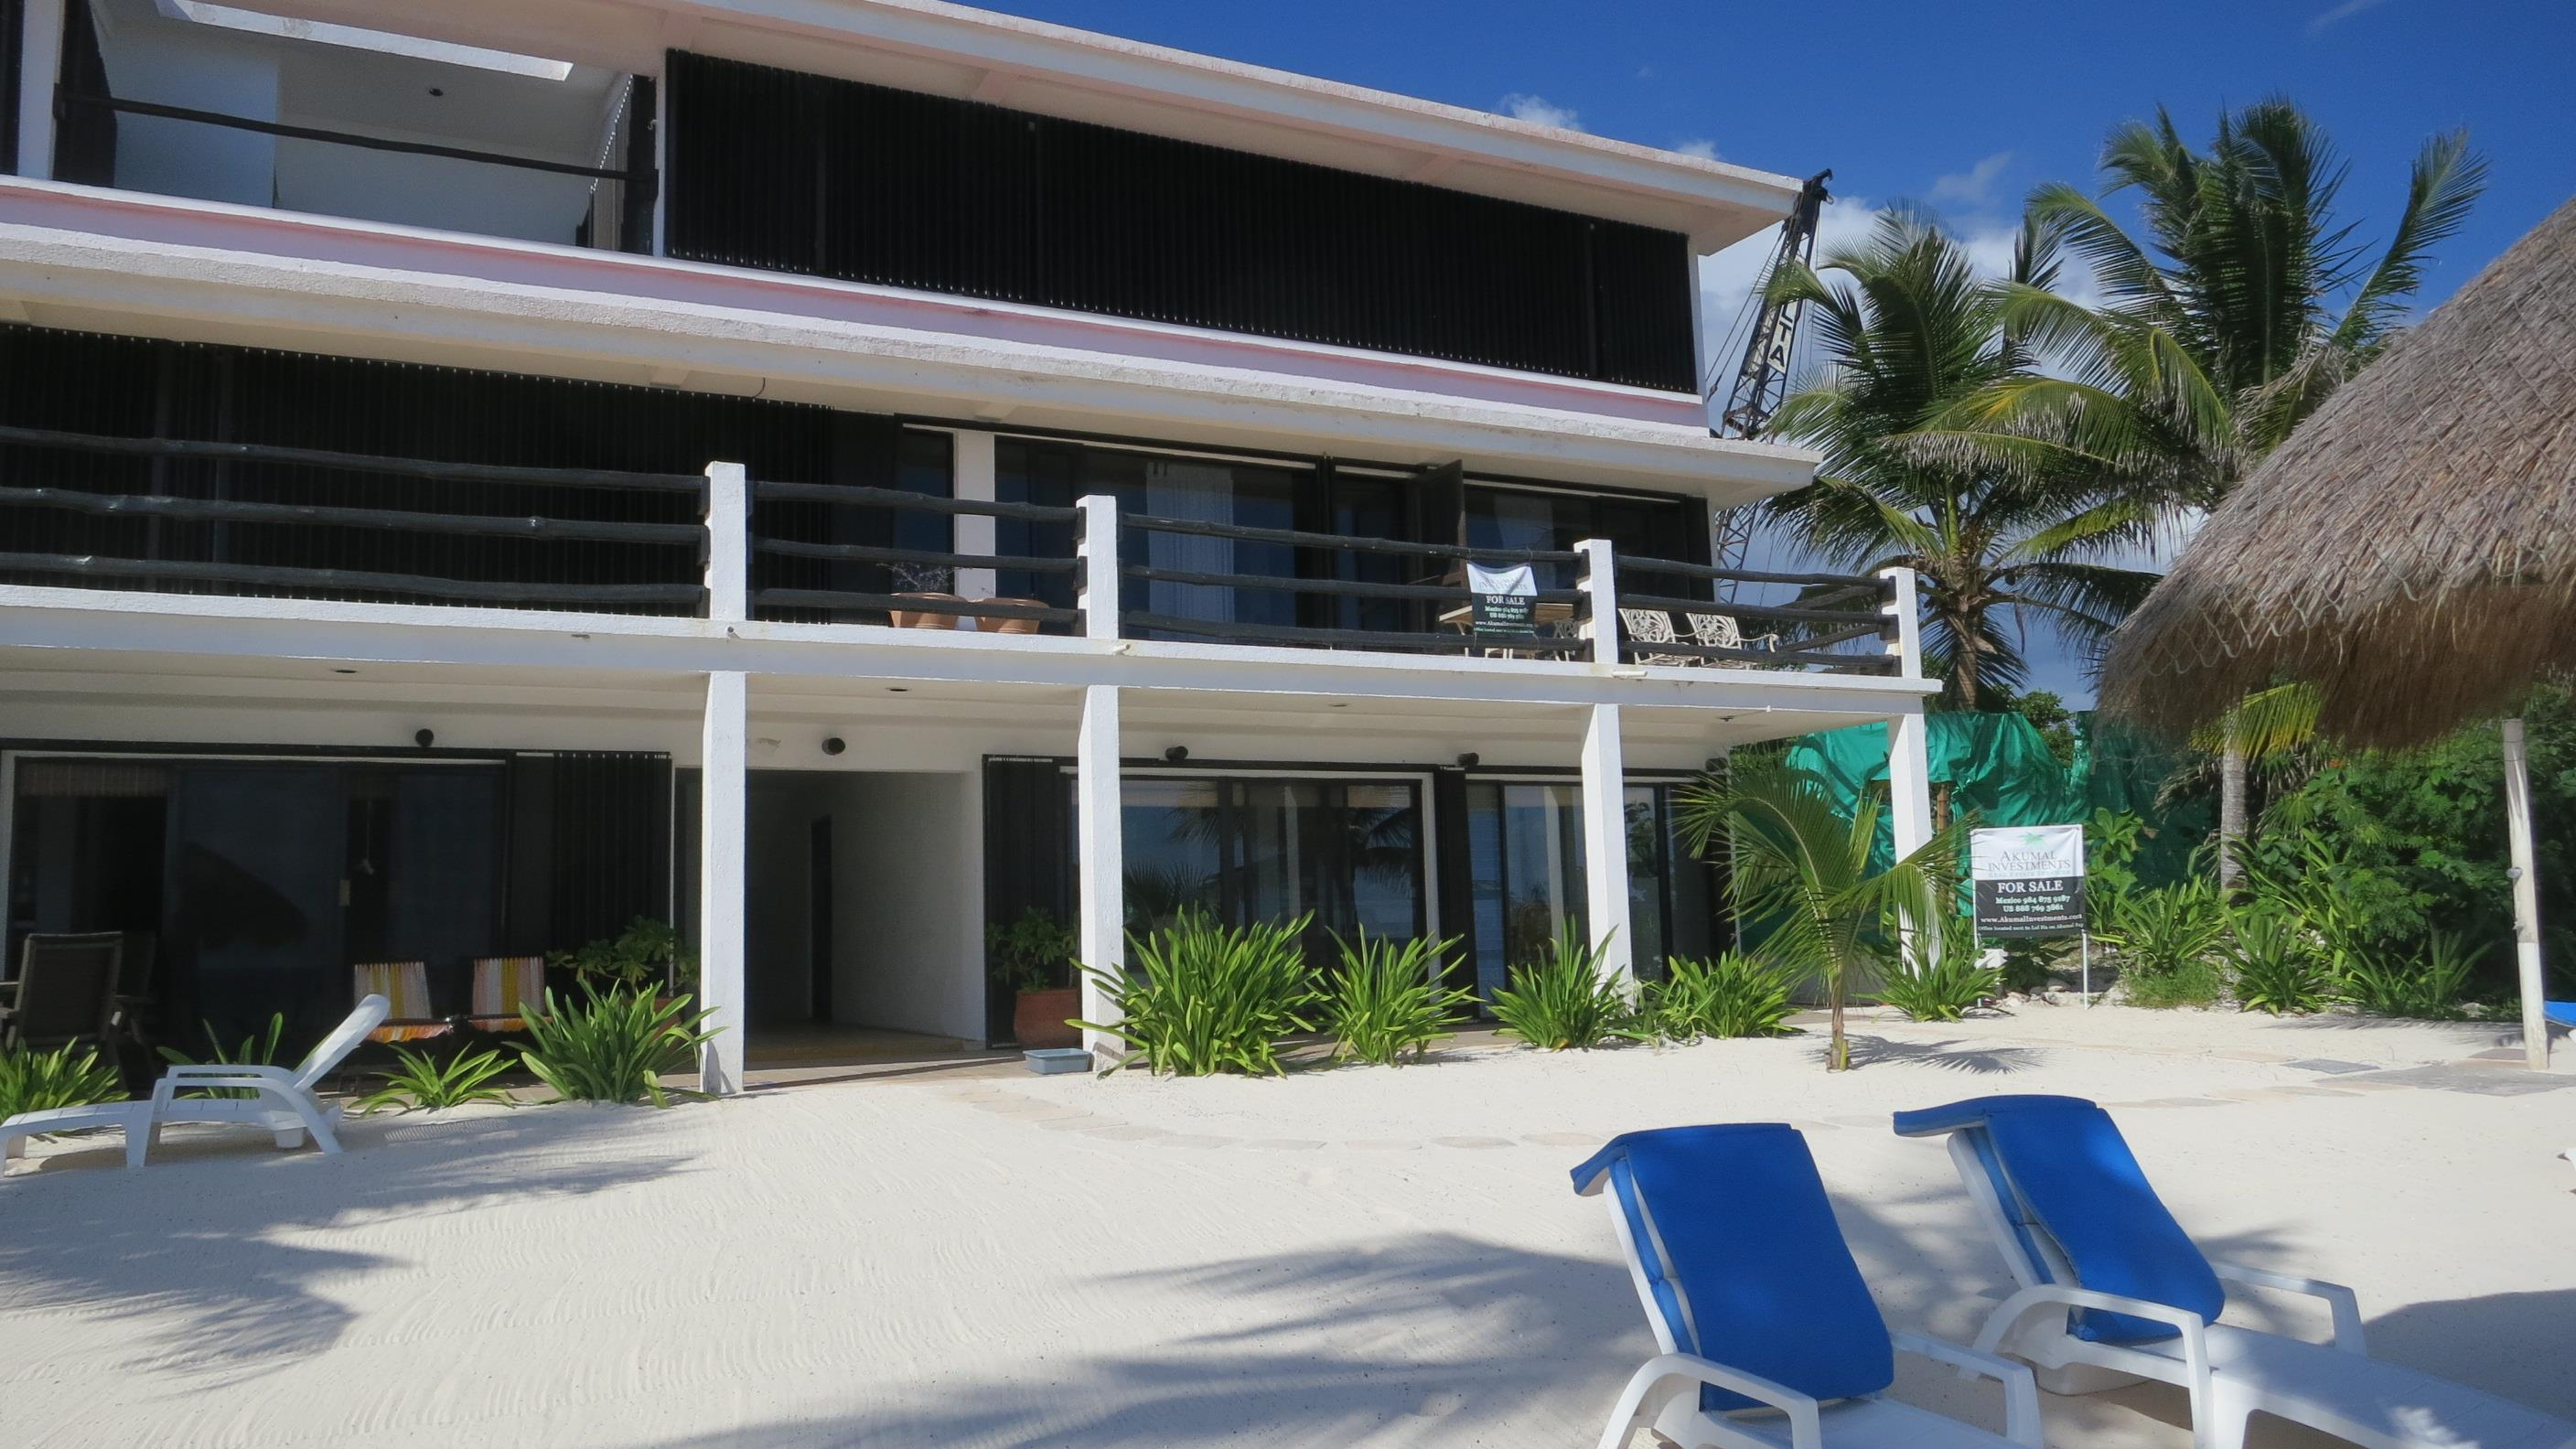 Yool Caanal Condo for Sale Akumal Half Moon Bay